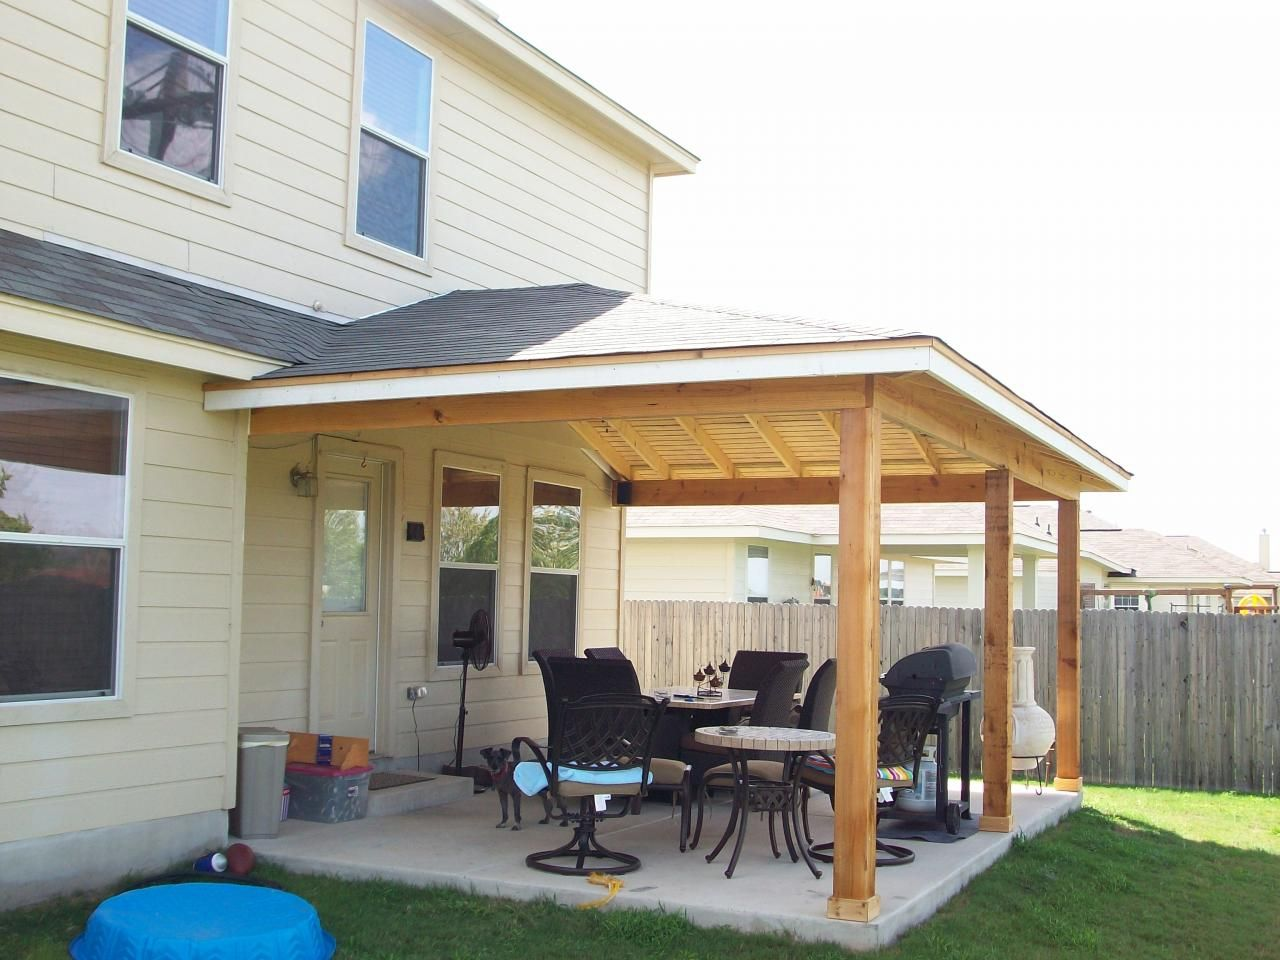 patio designs – Patio Cover Design Plans